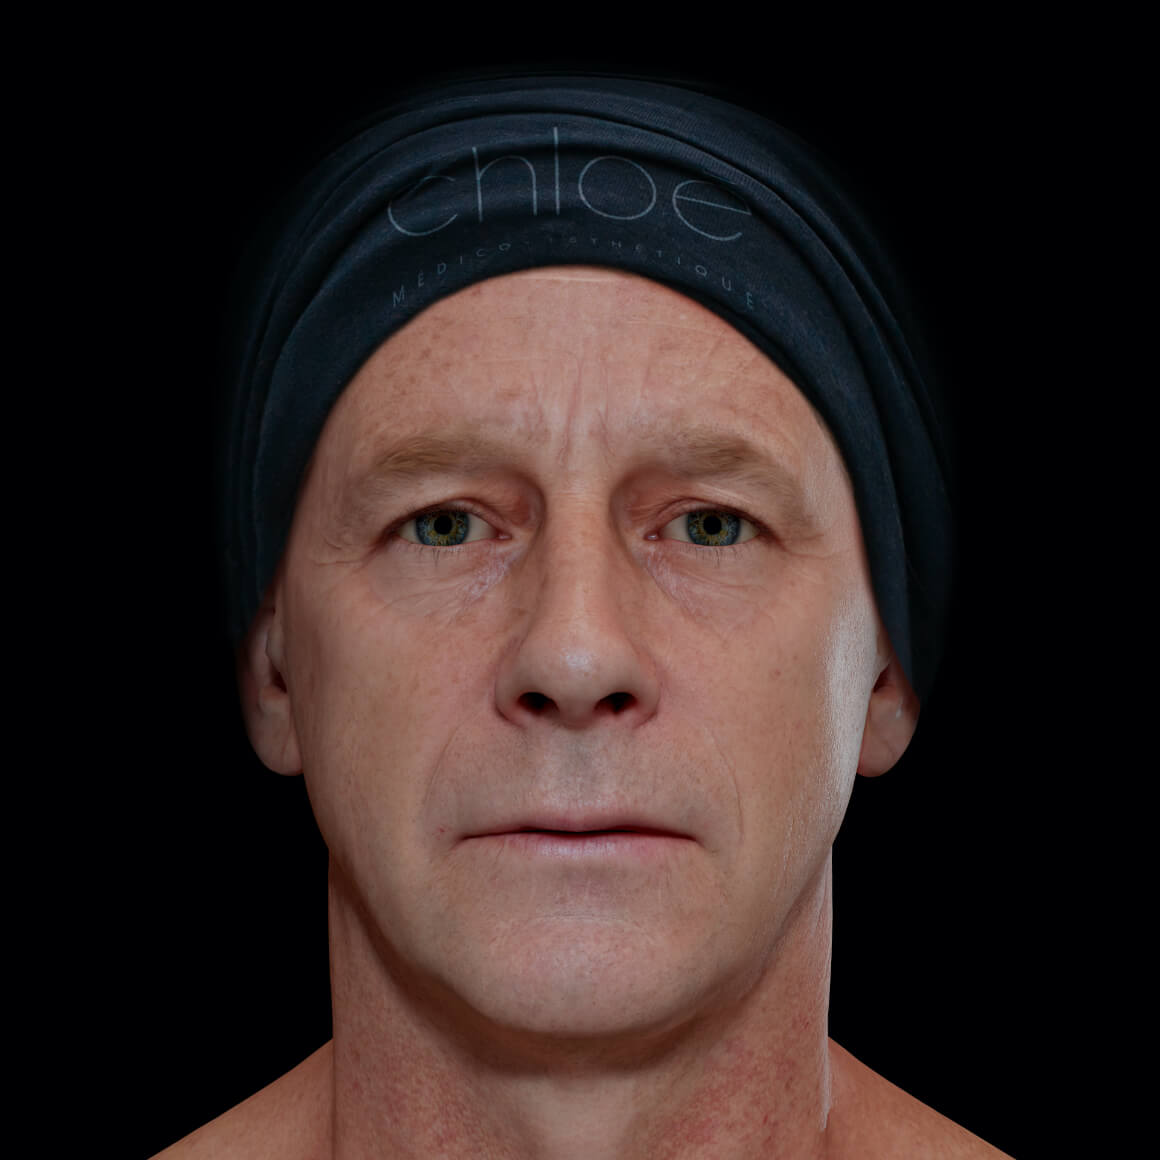 Male patient at Clinique Chloé facing front after platelet-rich plasma treatments, or PRP, for wrinkle reduction